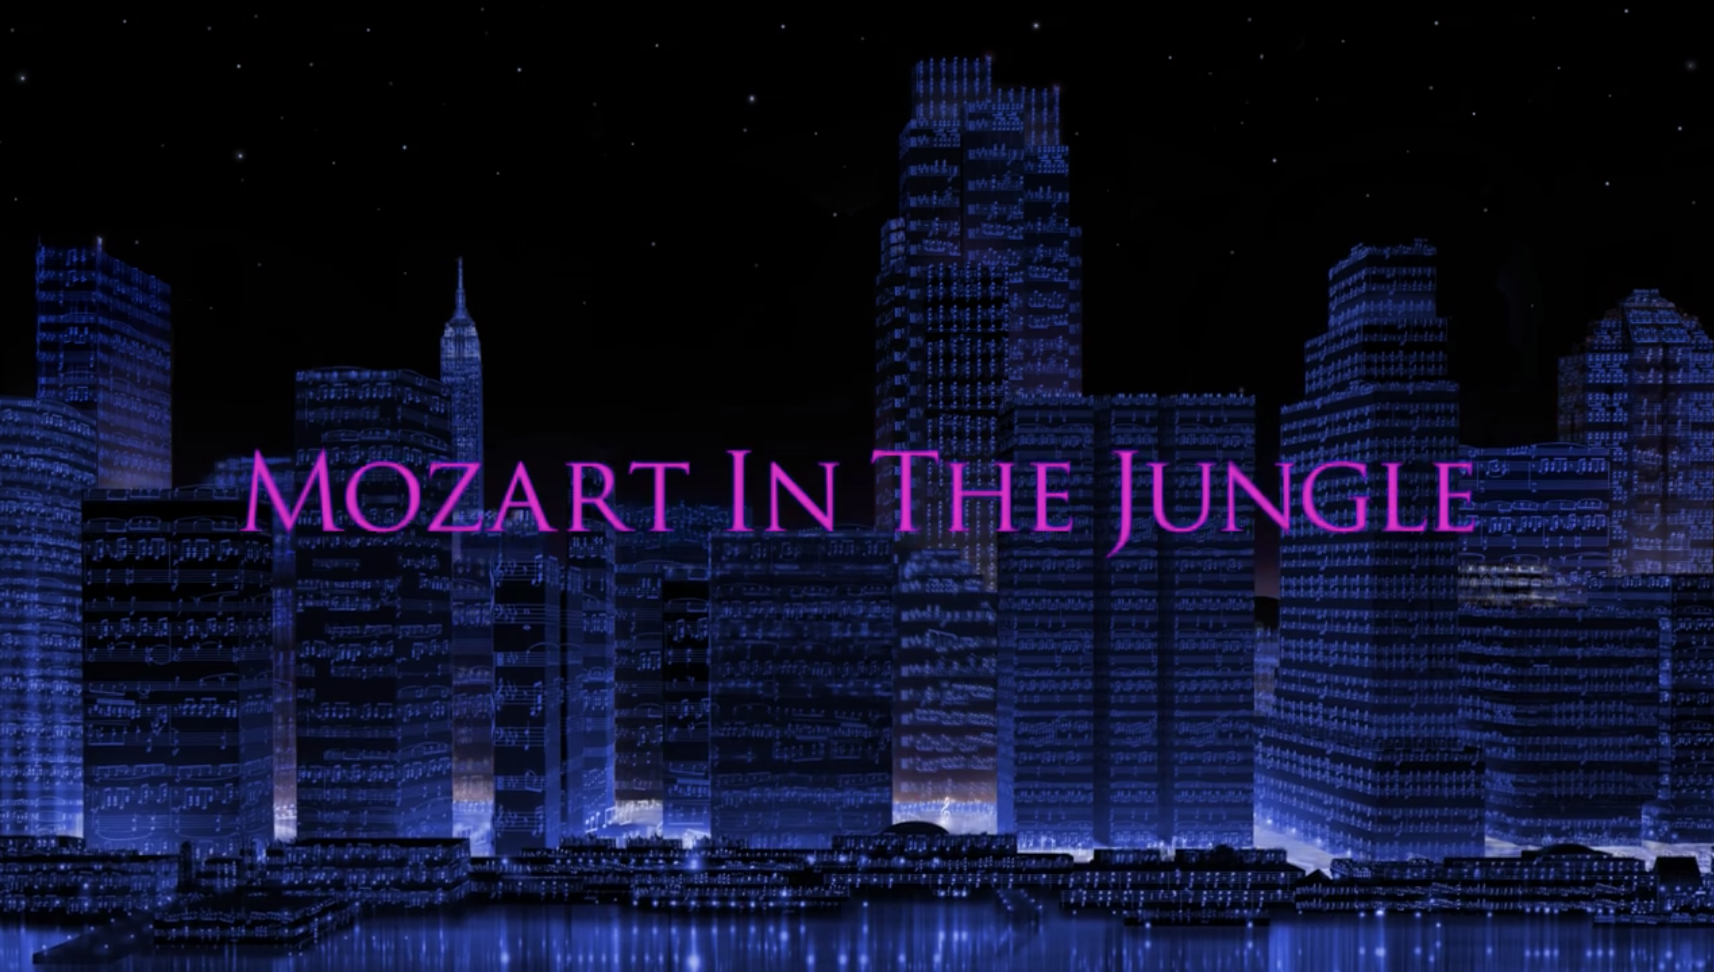 """Mozart in the Jungle"" title card."